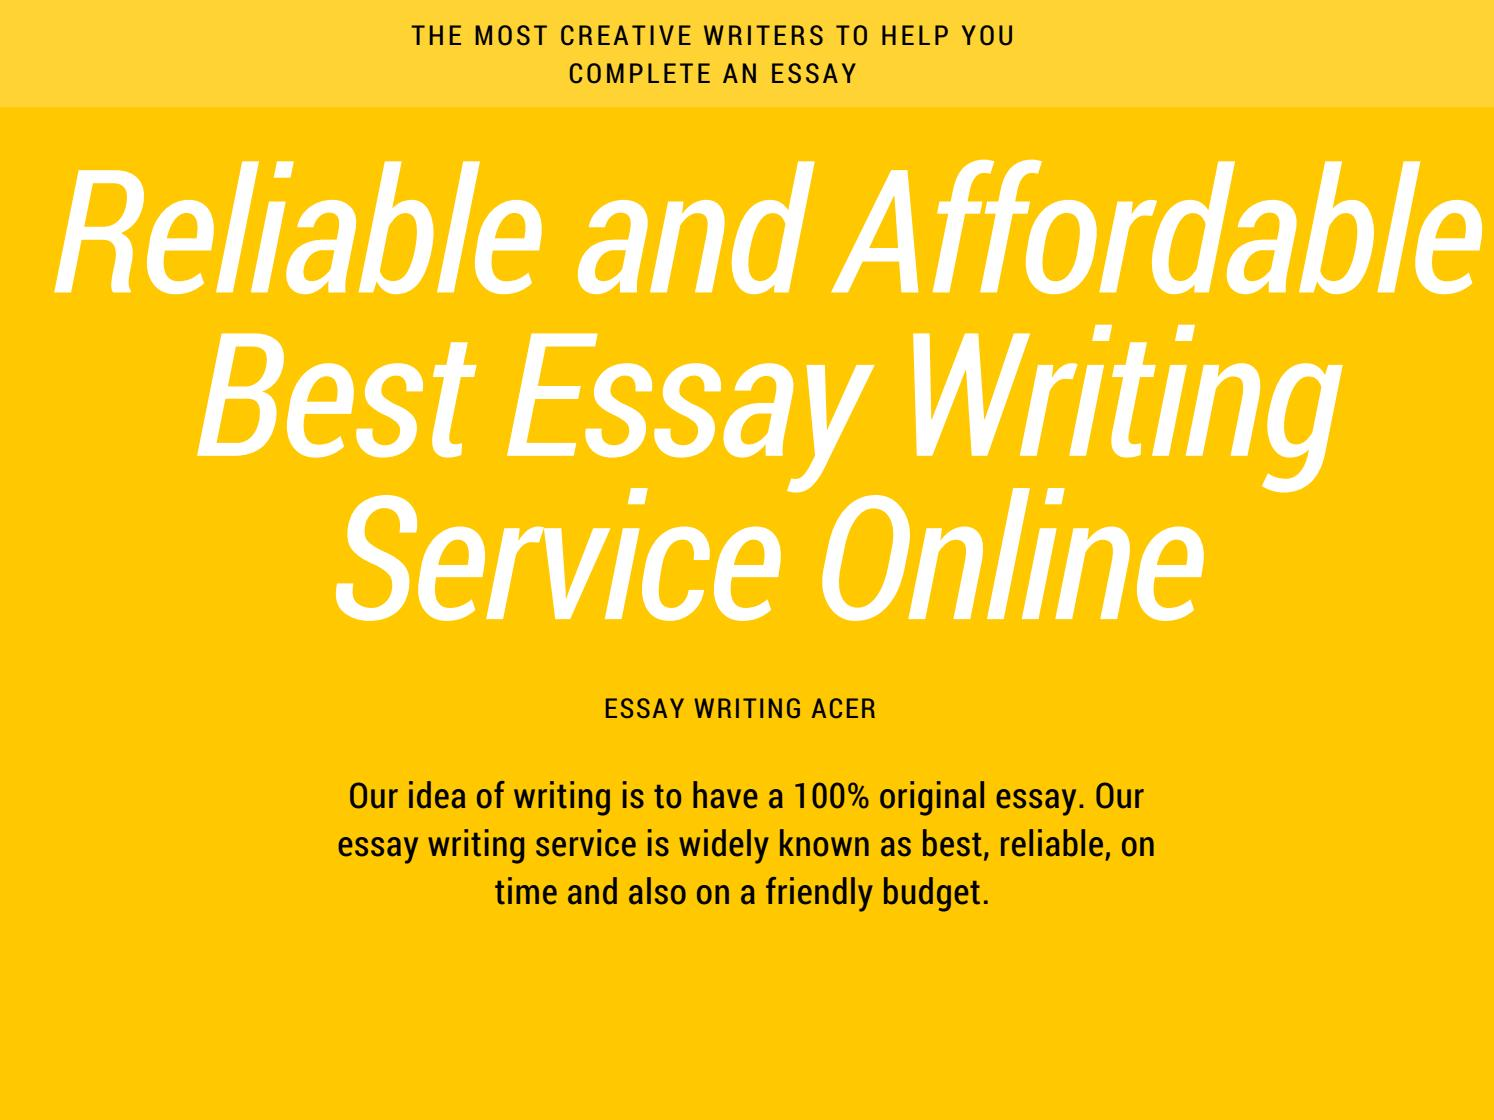 Online writing services review